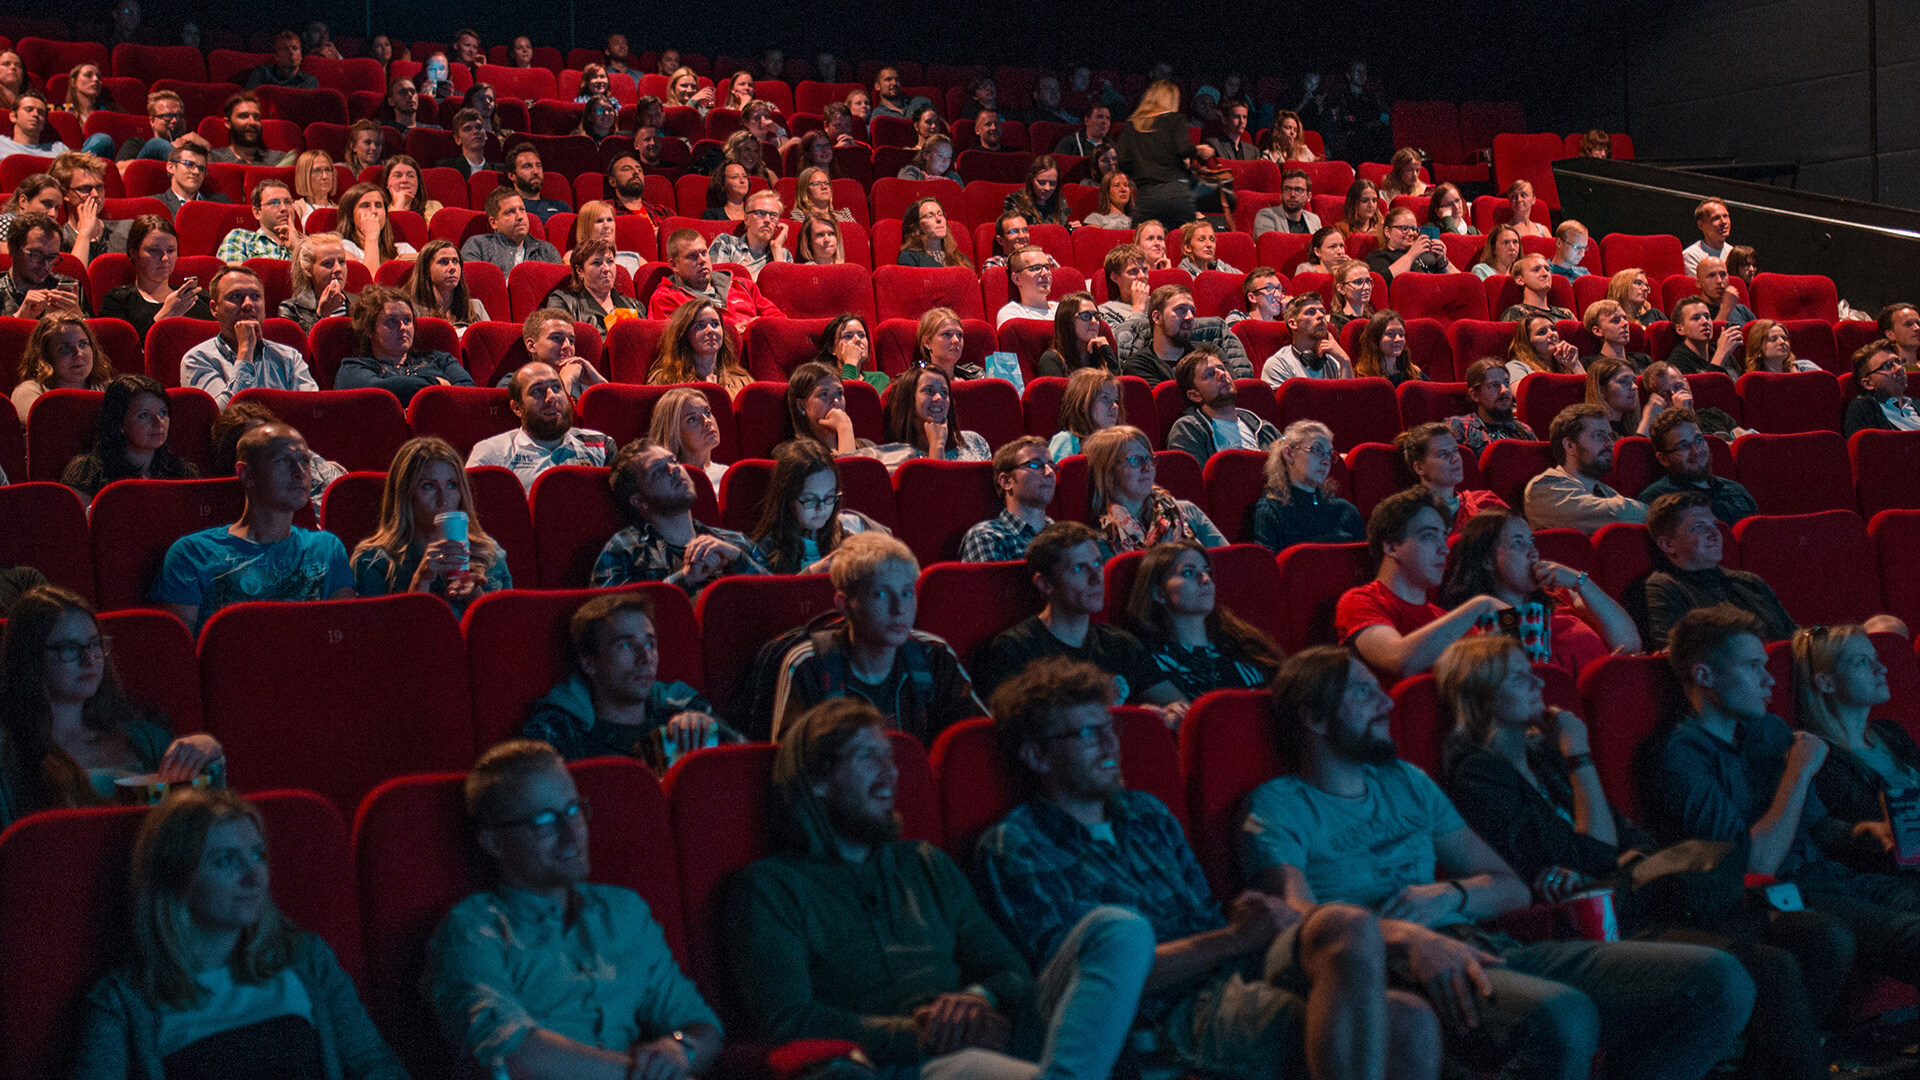 A cinema full of people expressing different emotions